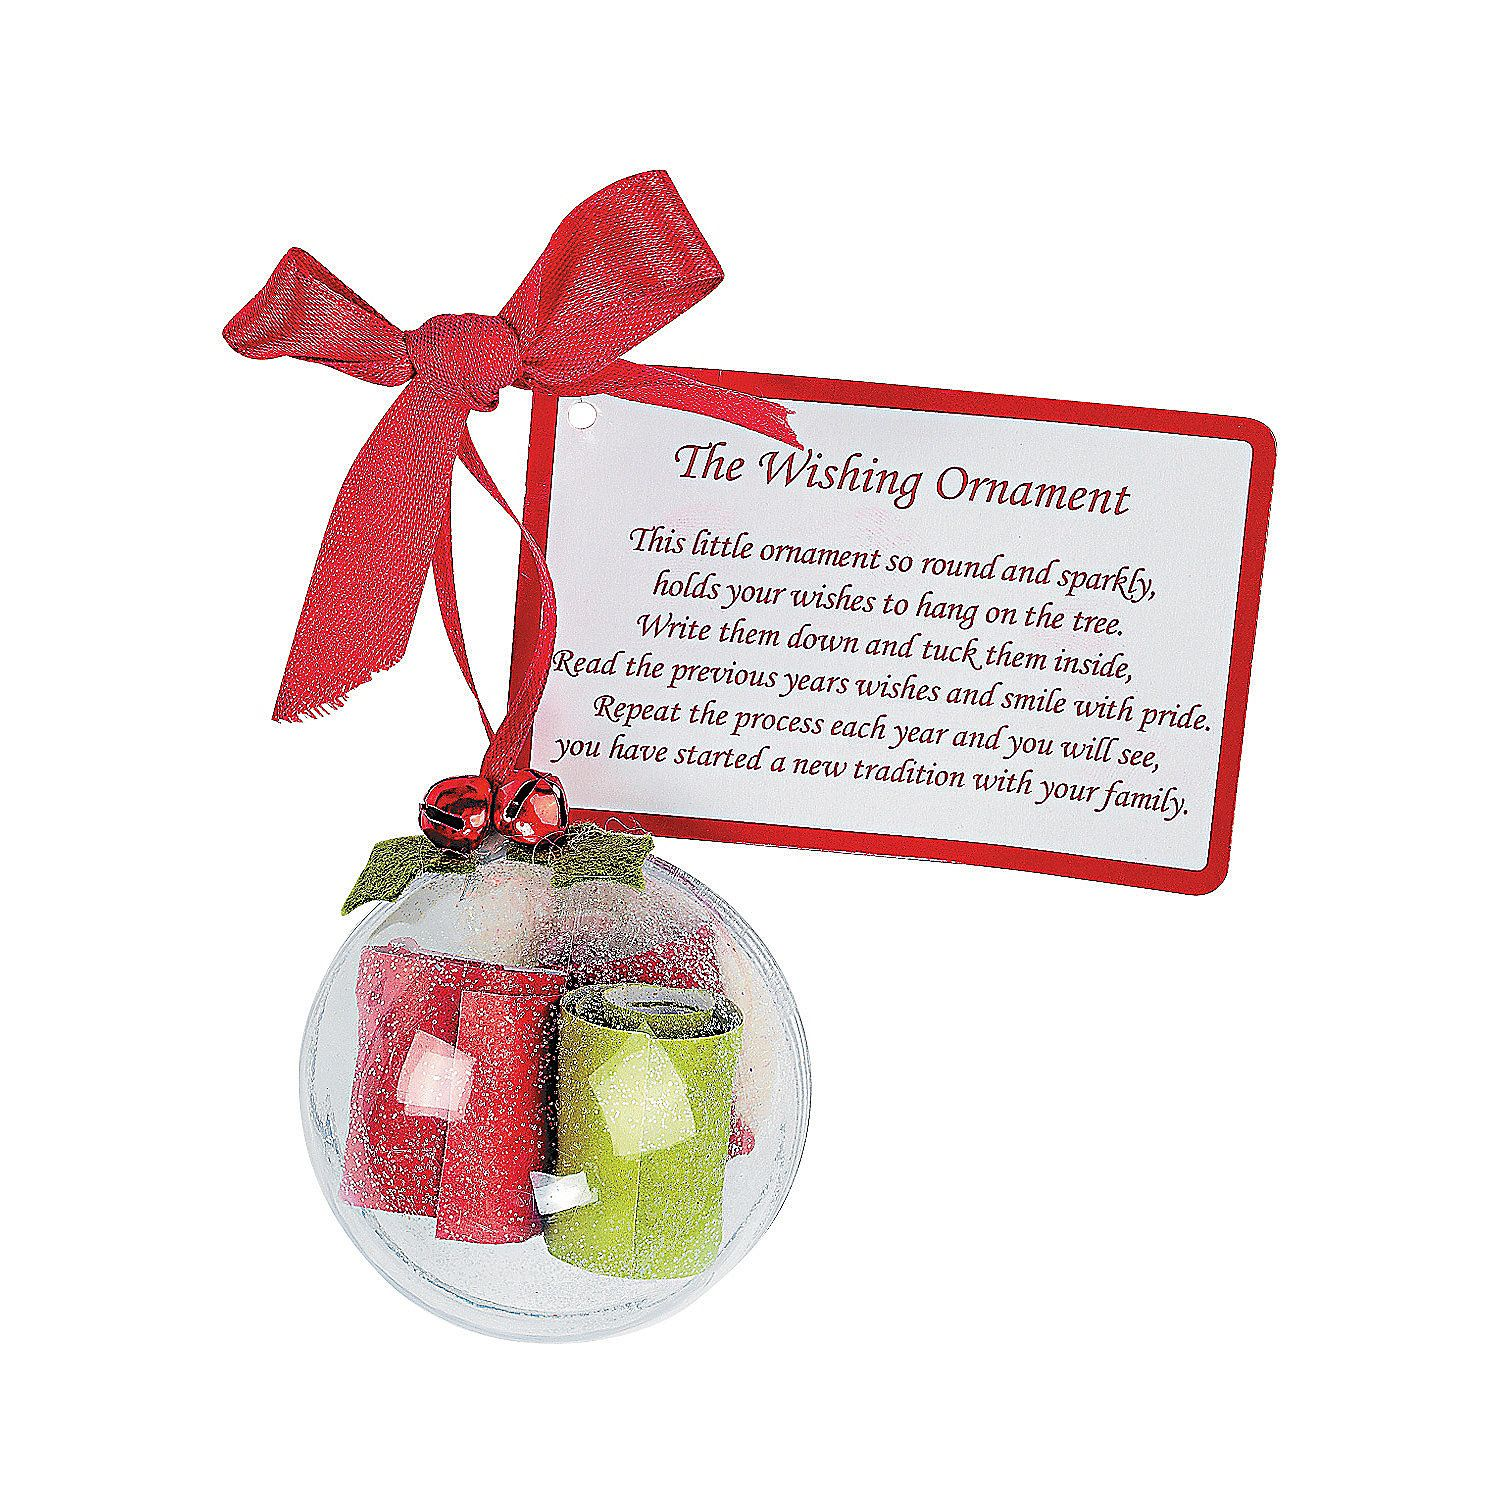 Legend Of The Christmas Tree Poem: Wishing Ornament Christmas Craft Kit